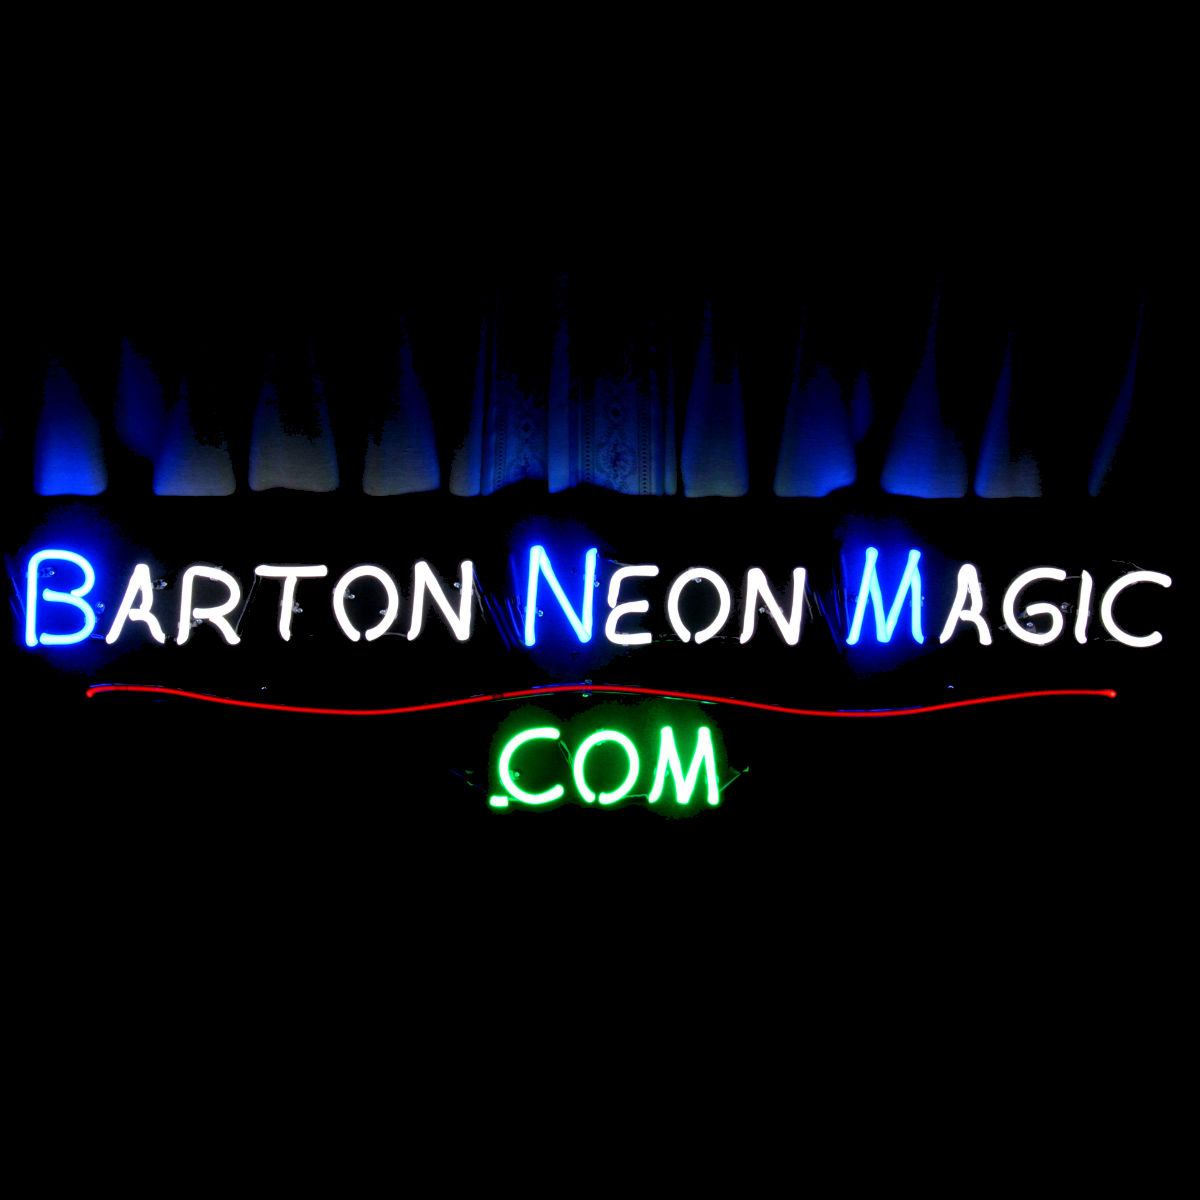 Custom Hand-blown Designer Neon Lighting by John Barton - BartonNeonMagic.com